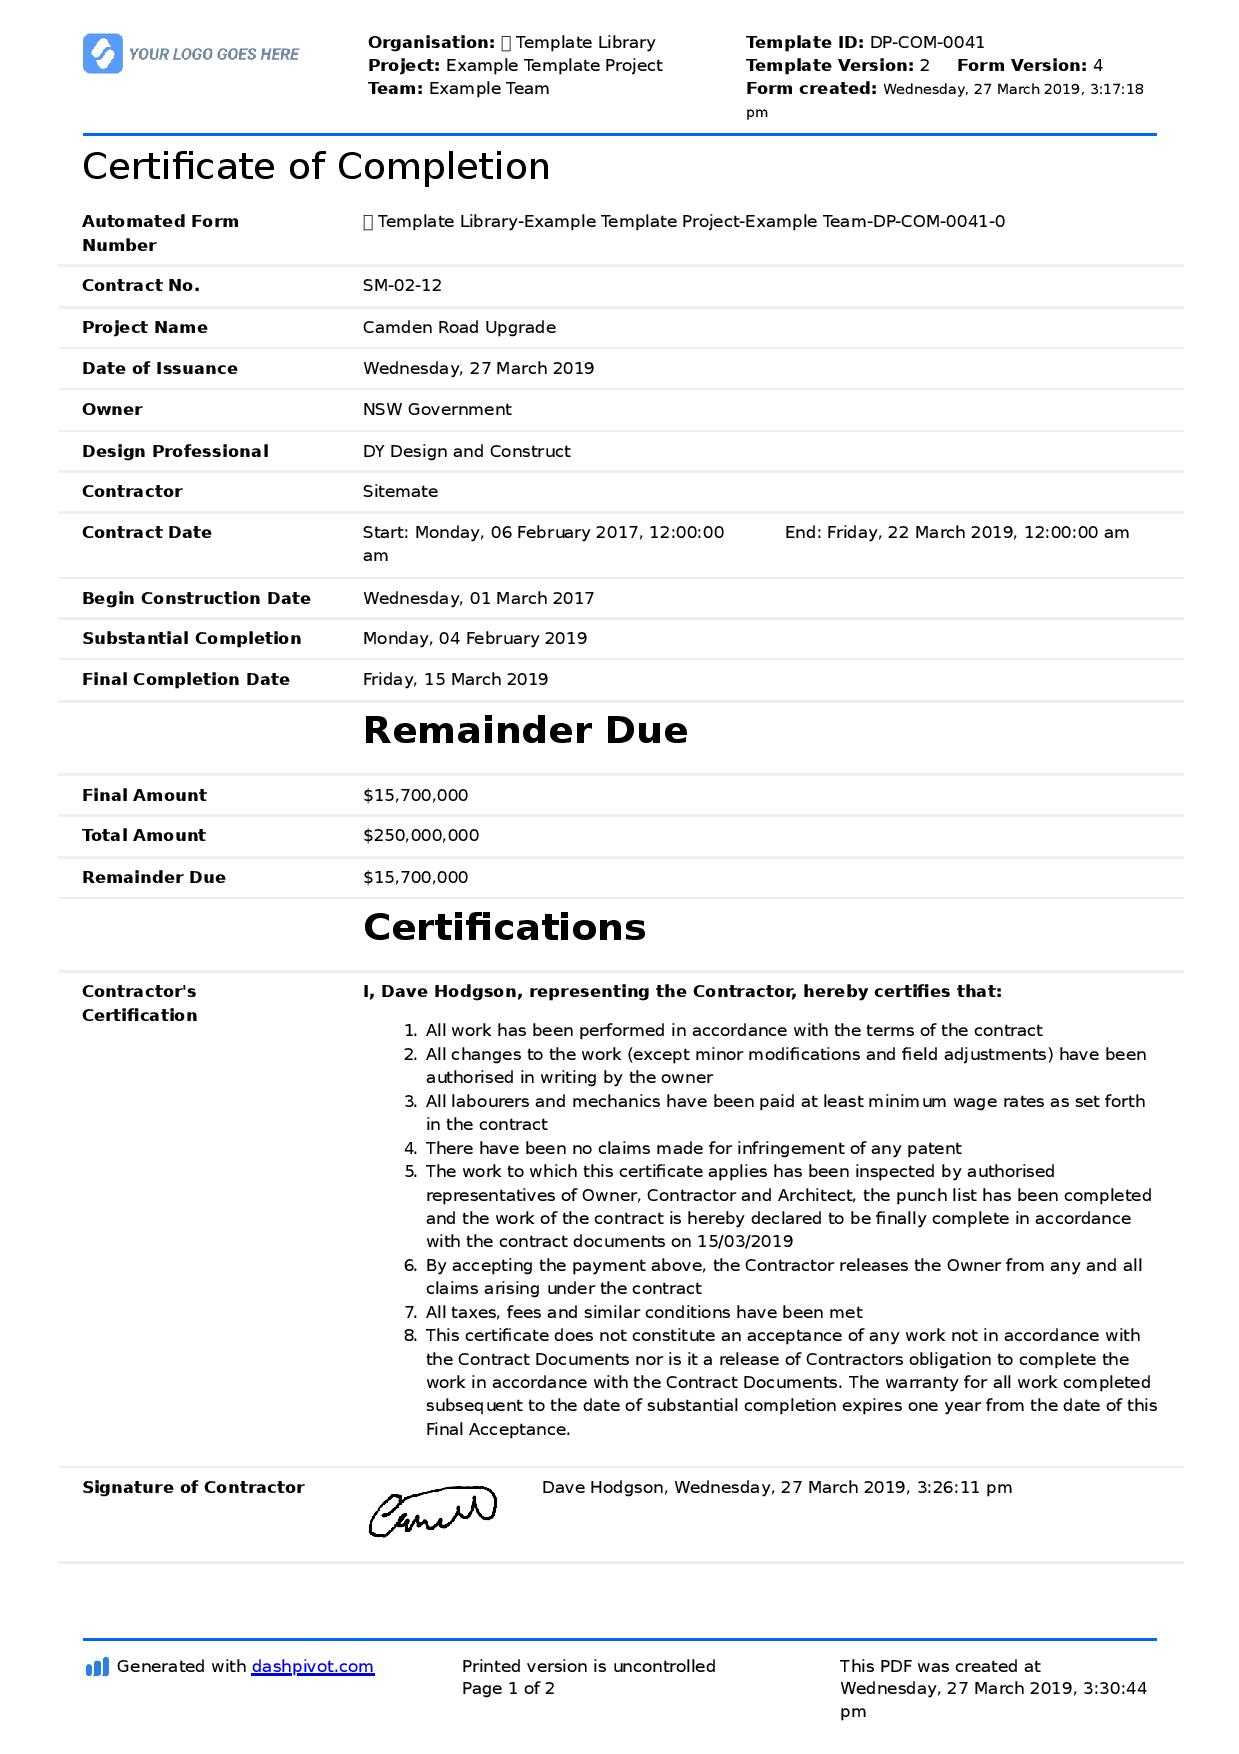 Letter Of Completion Of Work Sample (Use Or Copy For Yourself) Pertaining To Practical Completion Certificate Template Uk